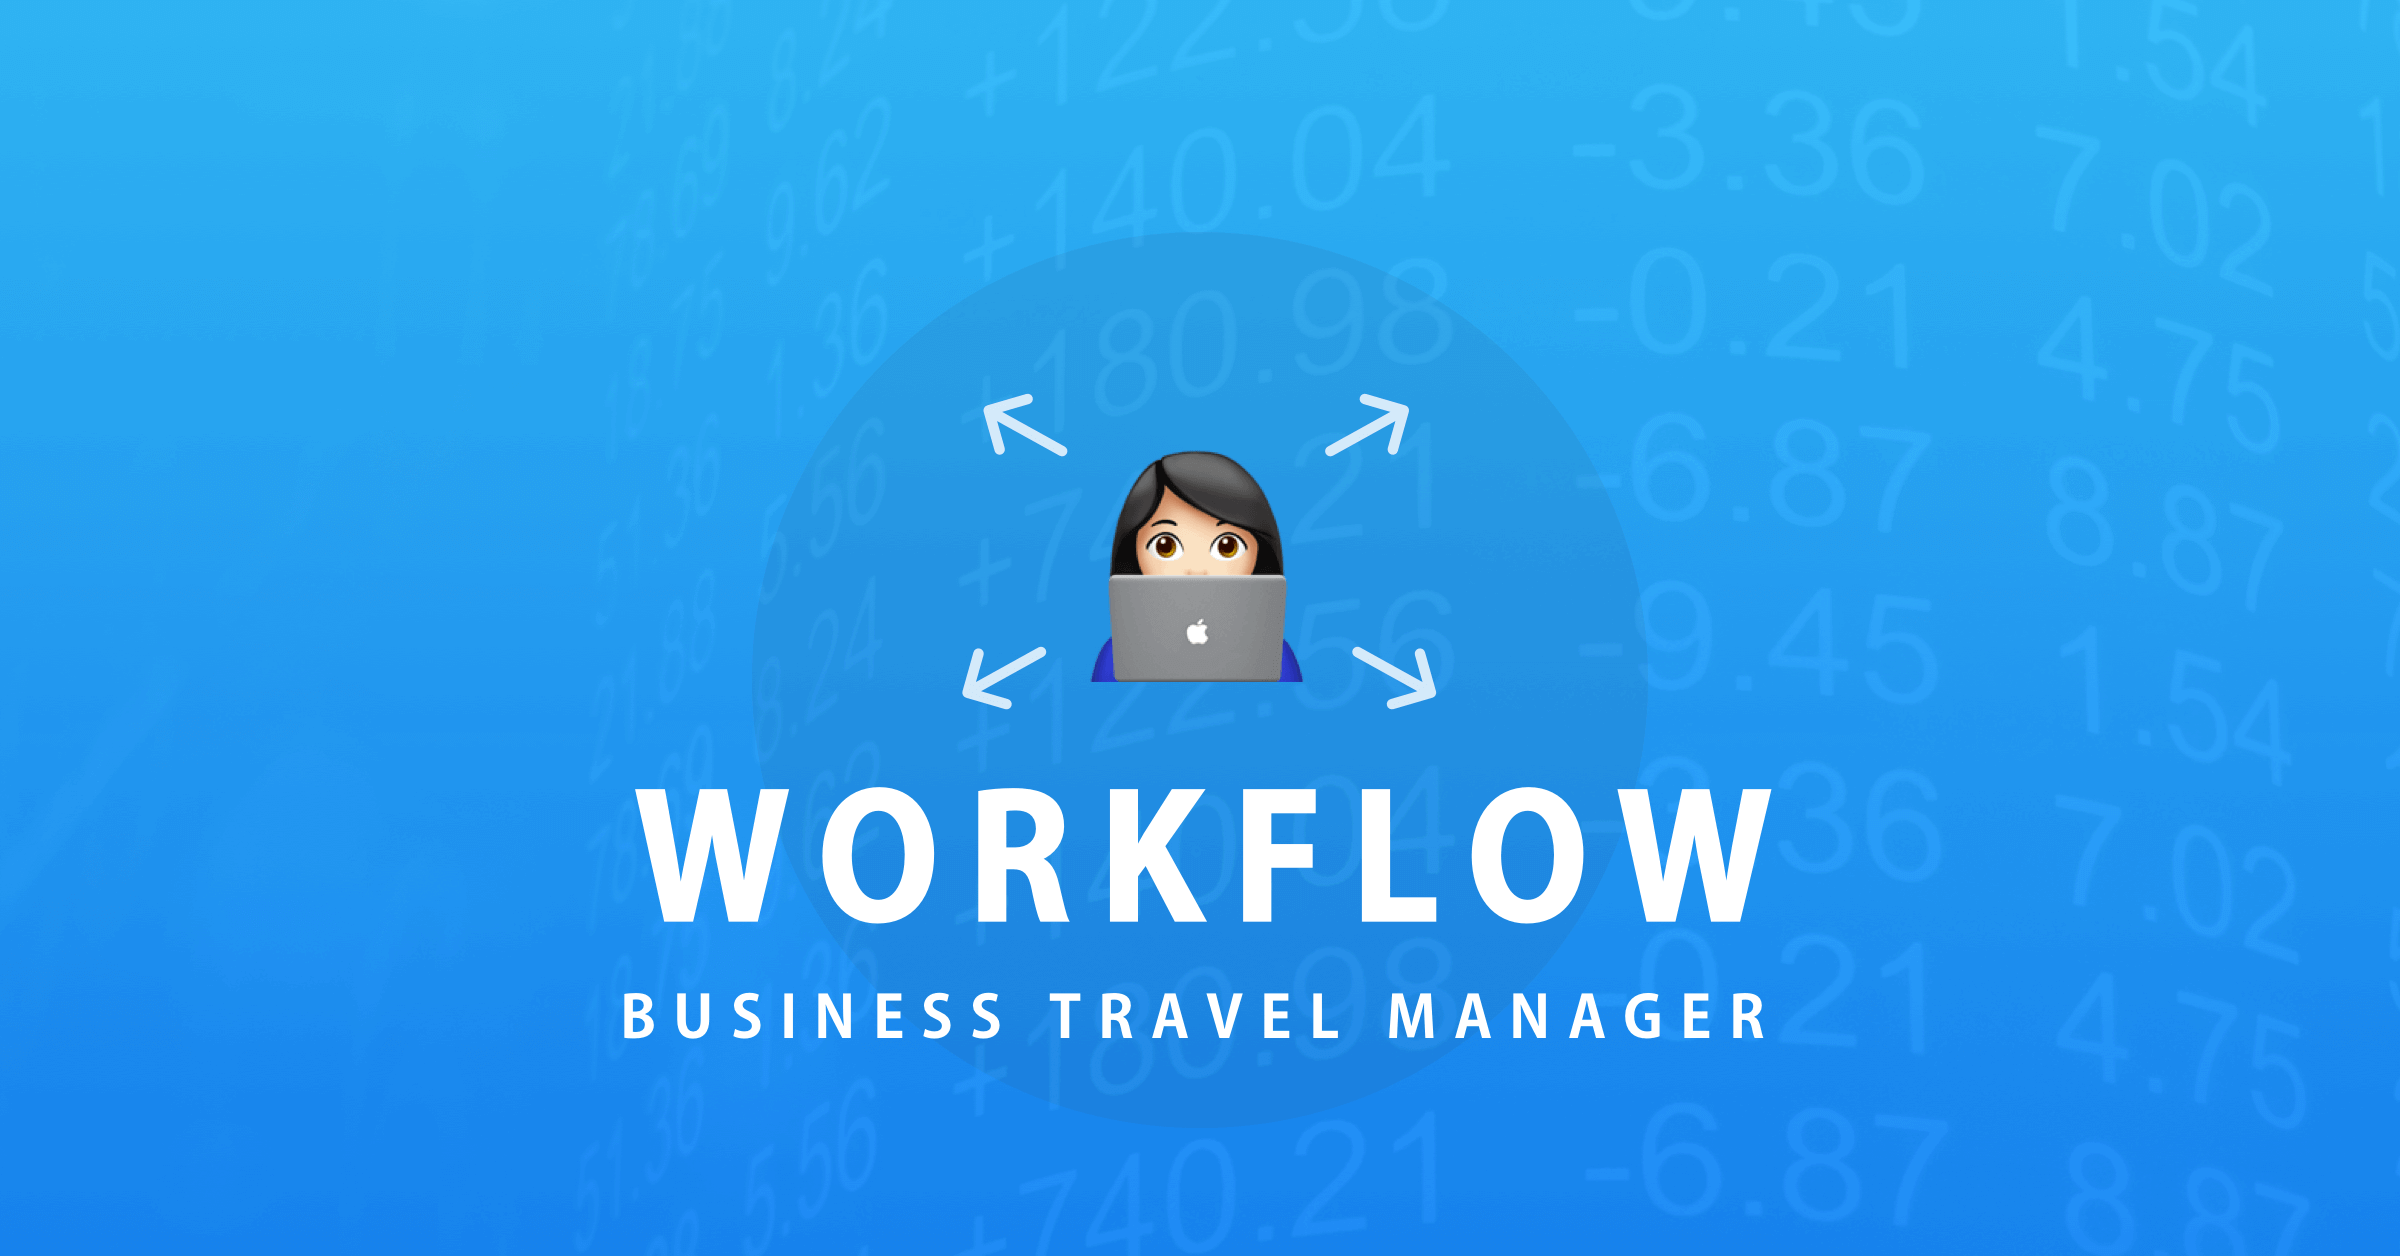 What does a business travel manager's workflow look like?